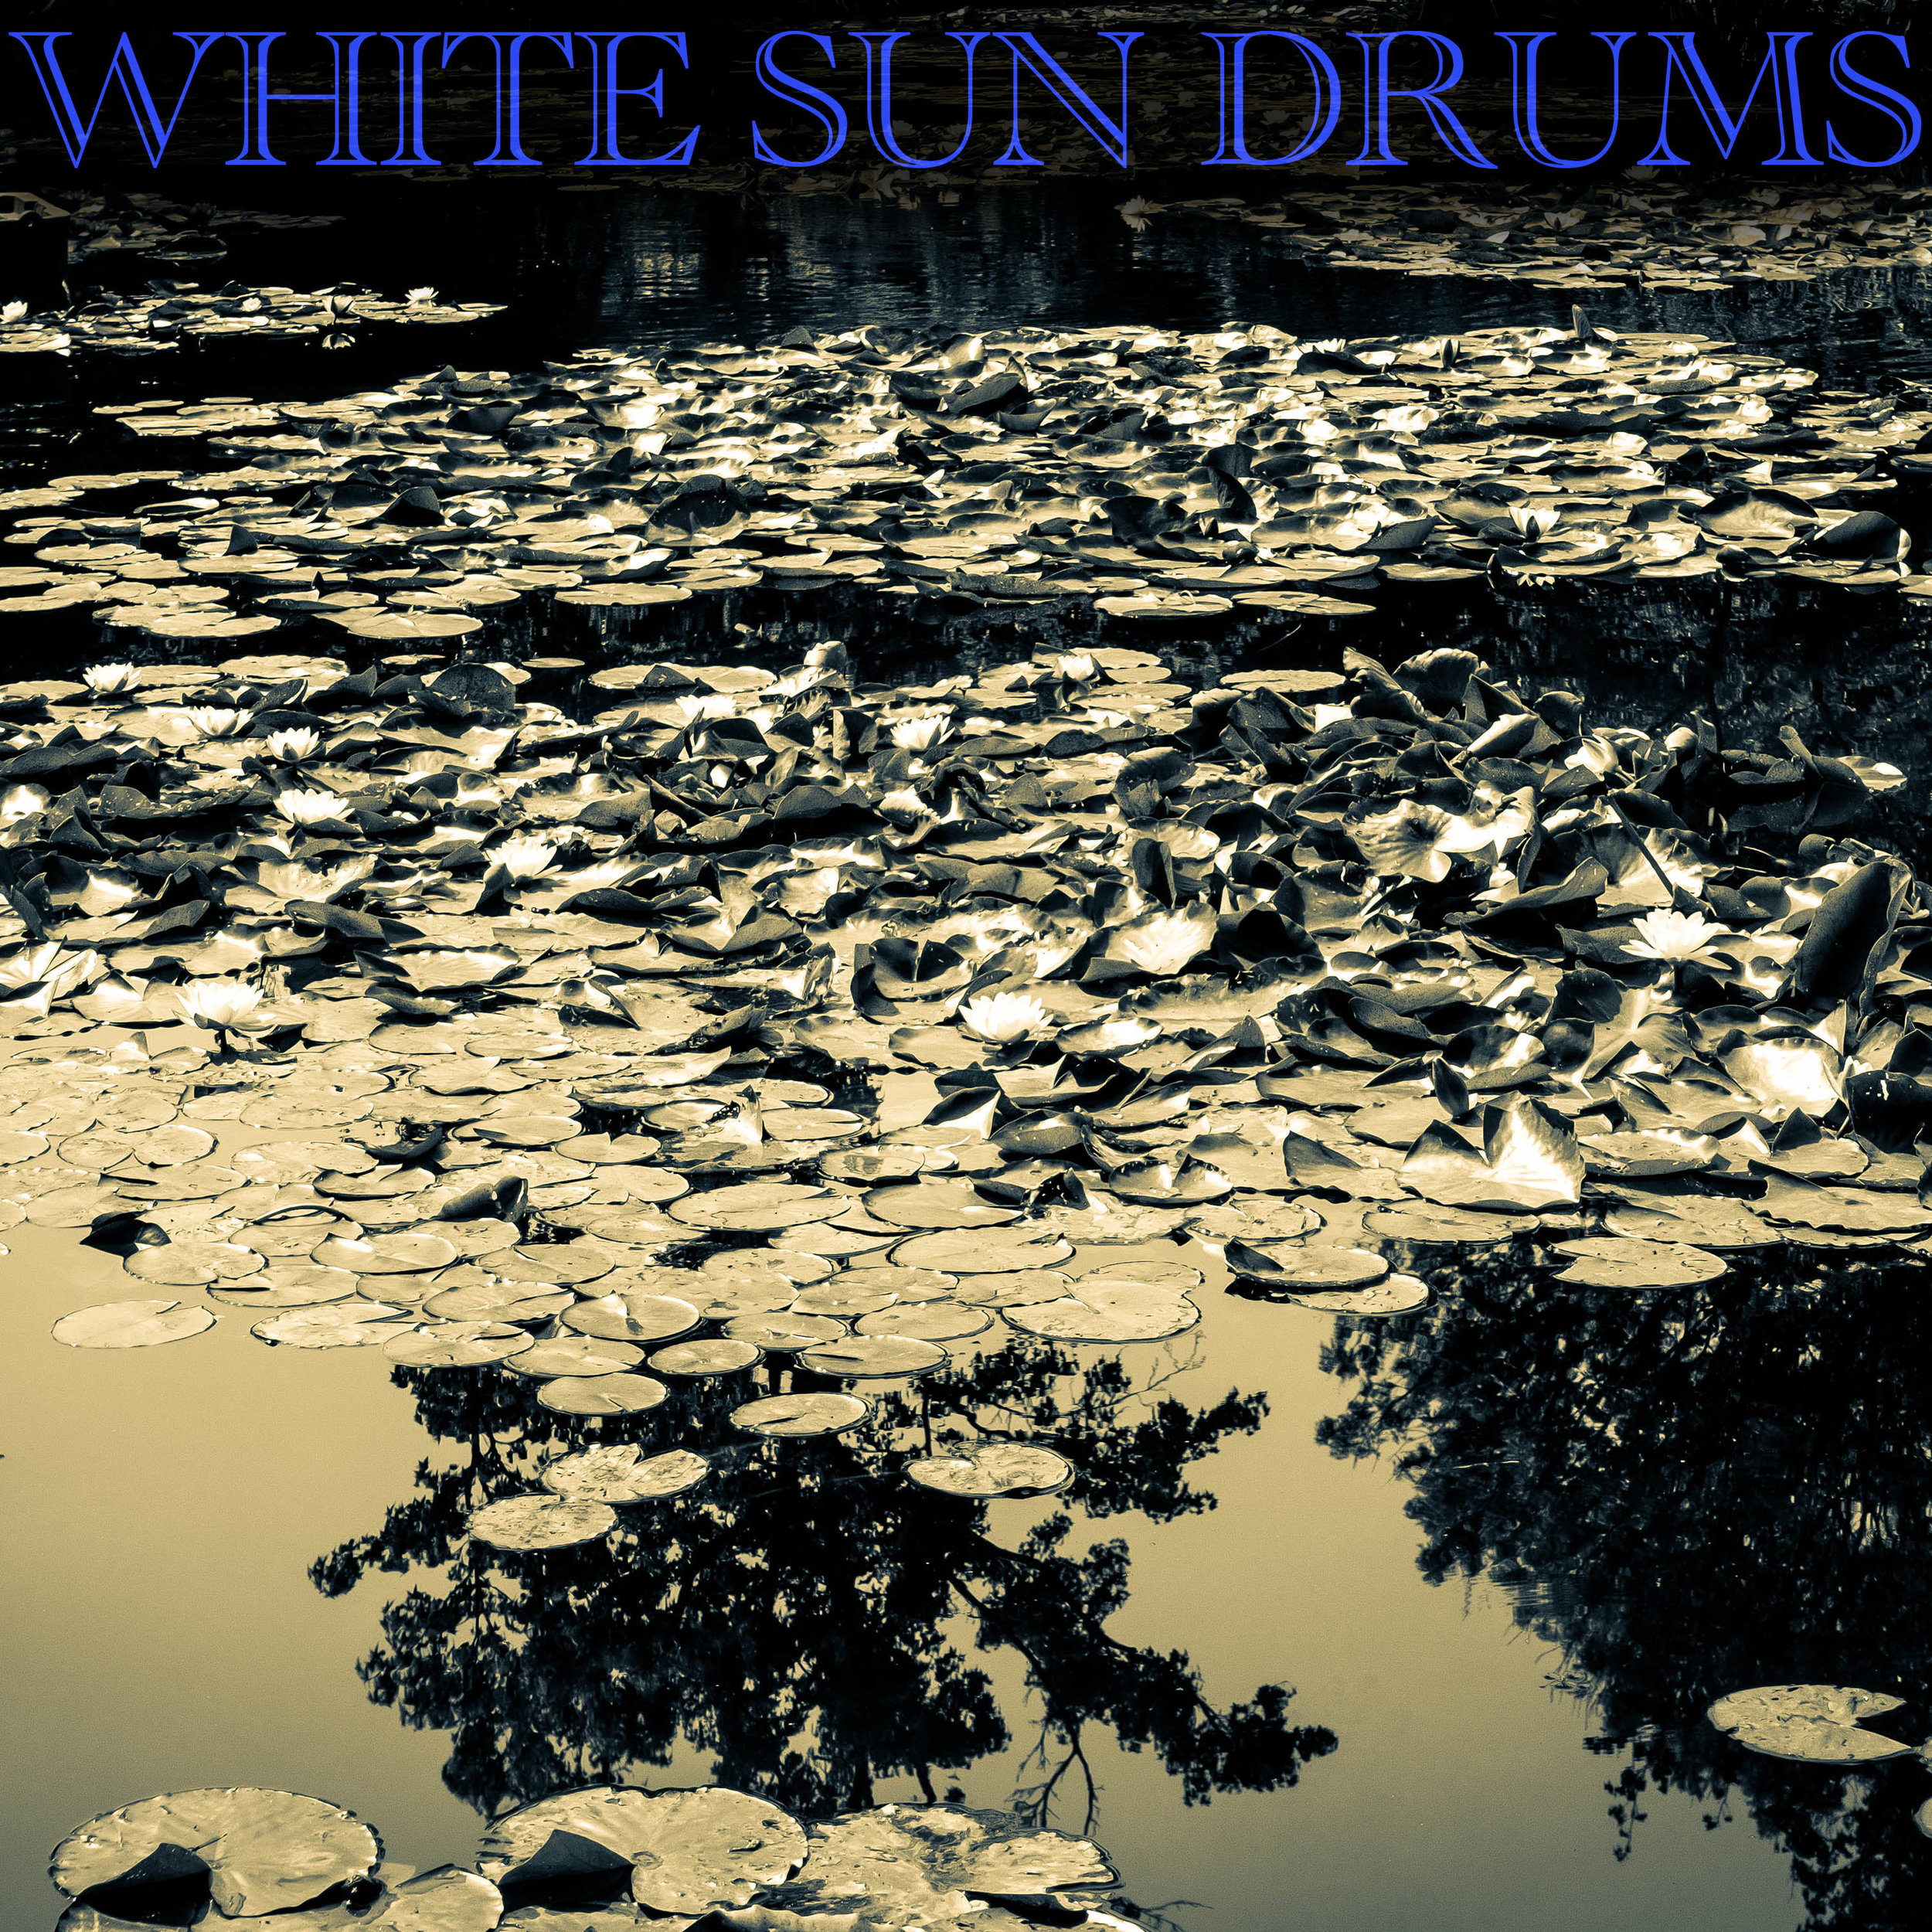 WhiteSunDrums.jpg